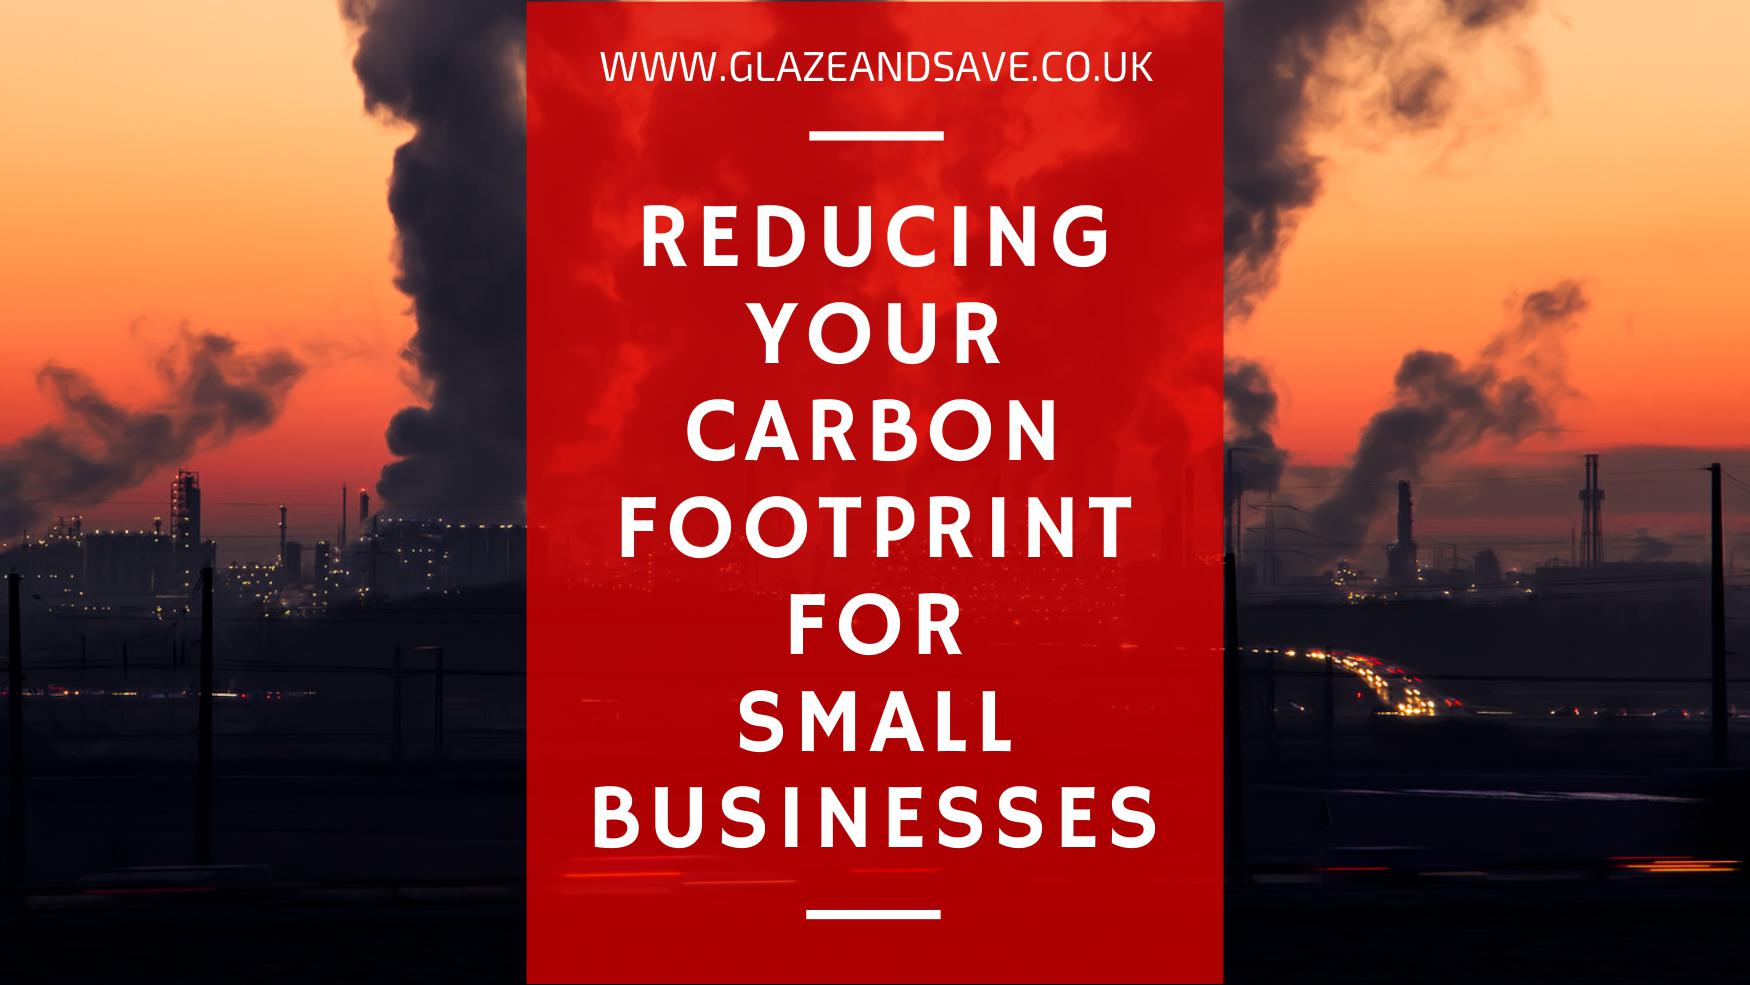 A guide to reducing your carbon footprint for small businesses by Glaze & Save bespoke magnetic secondary glazing and draught proofing experts installing across Scotland from Aberdeen to Edinburgh, Dundee to Glasgow.